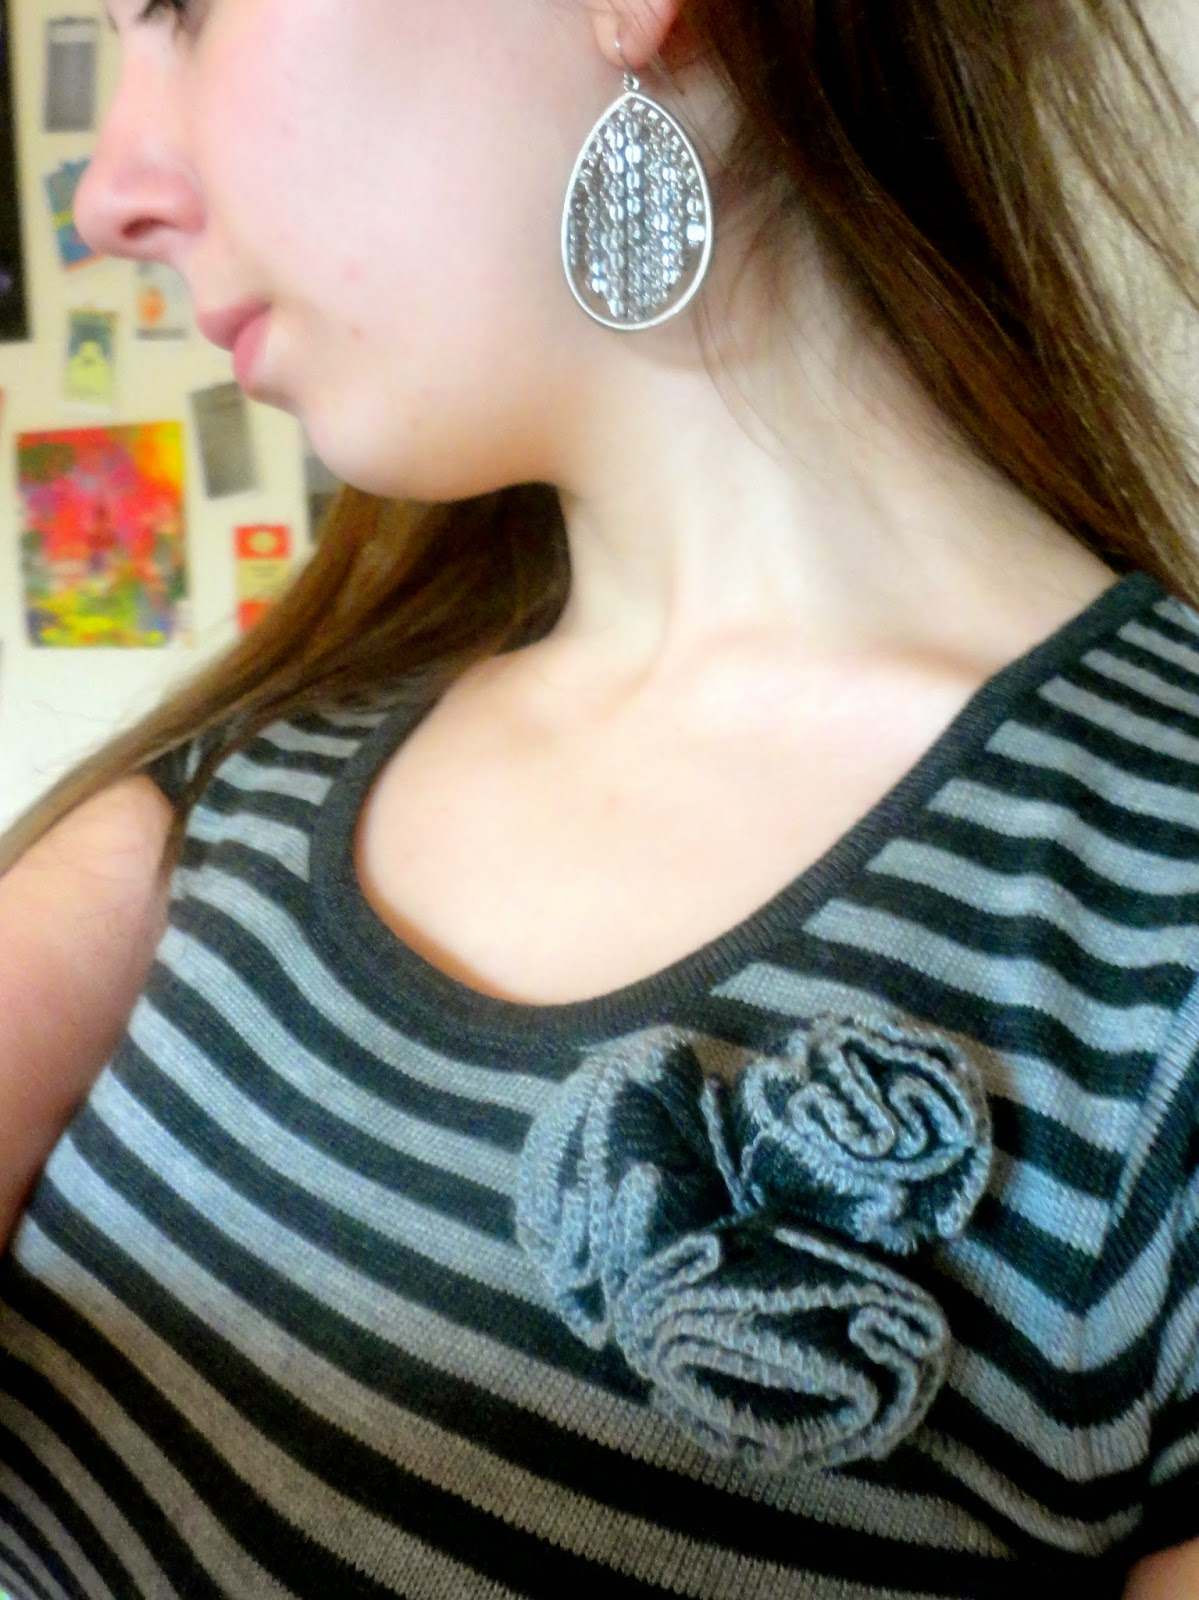 Outfit jewellery details, of black and silver chain & hoop earrings, and knitted flower on grey dress